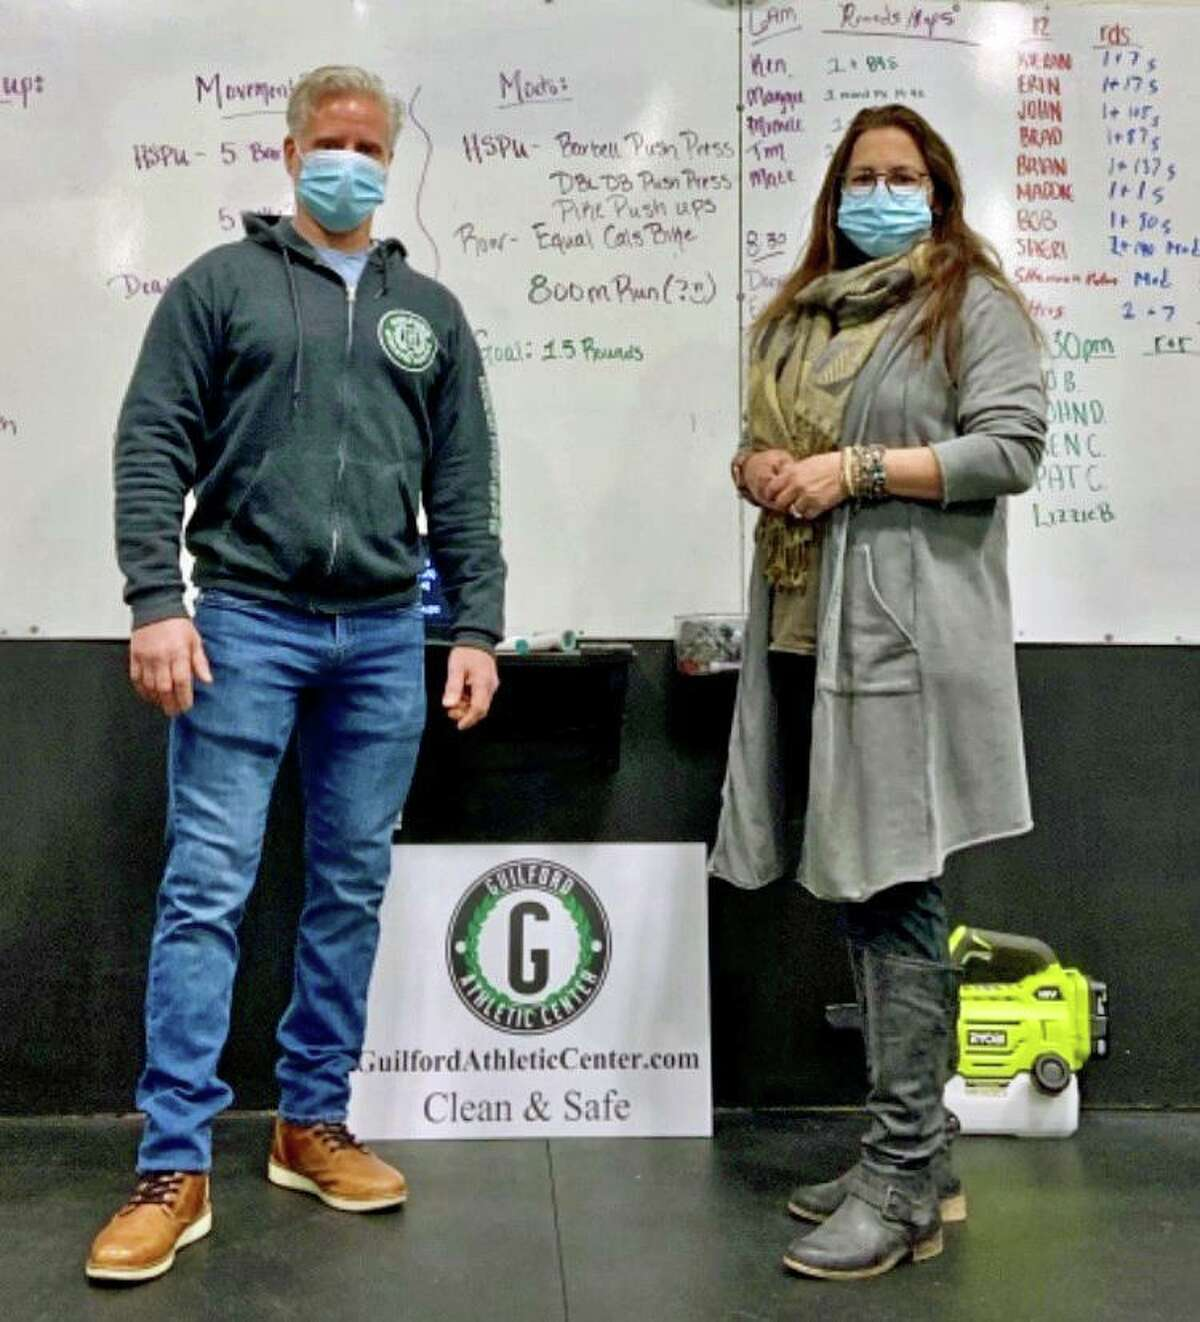 Clint Zeidenberg and Hannah Jurewicz, a Guilford psychologist, at the Guilford Athletic Center, who created the unique program, which comprises a one-hour workout followed by a recovery meeting.